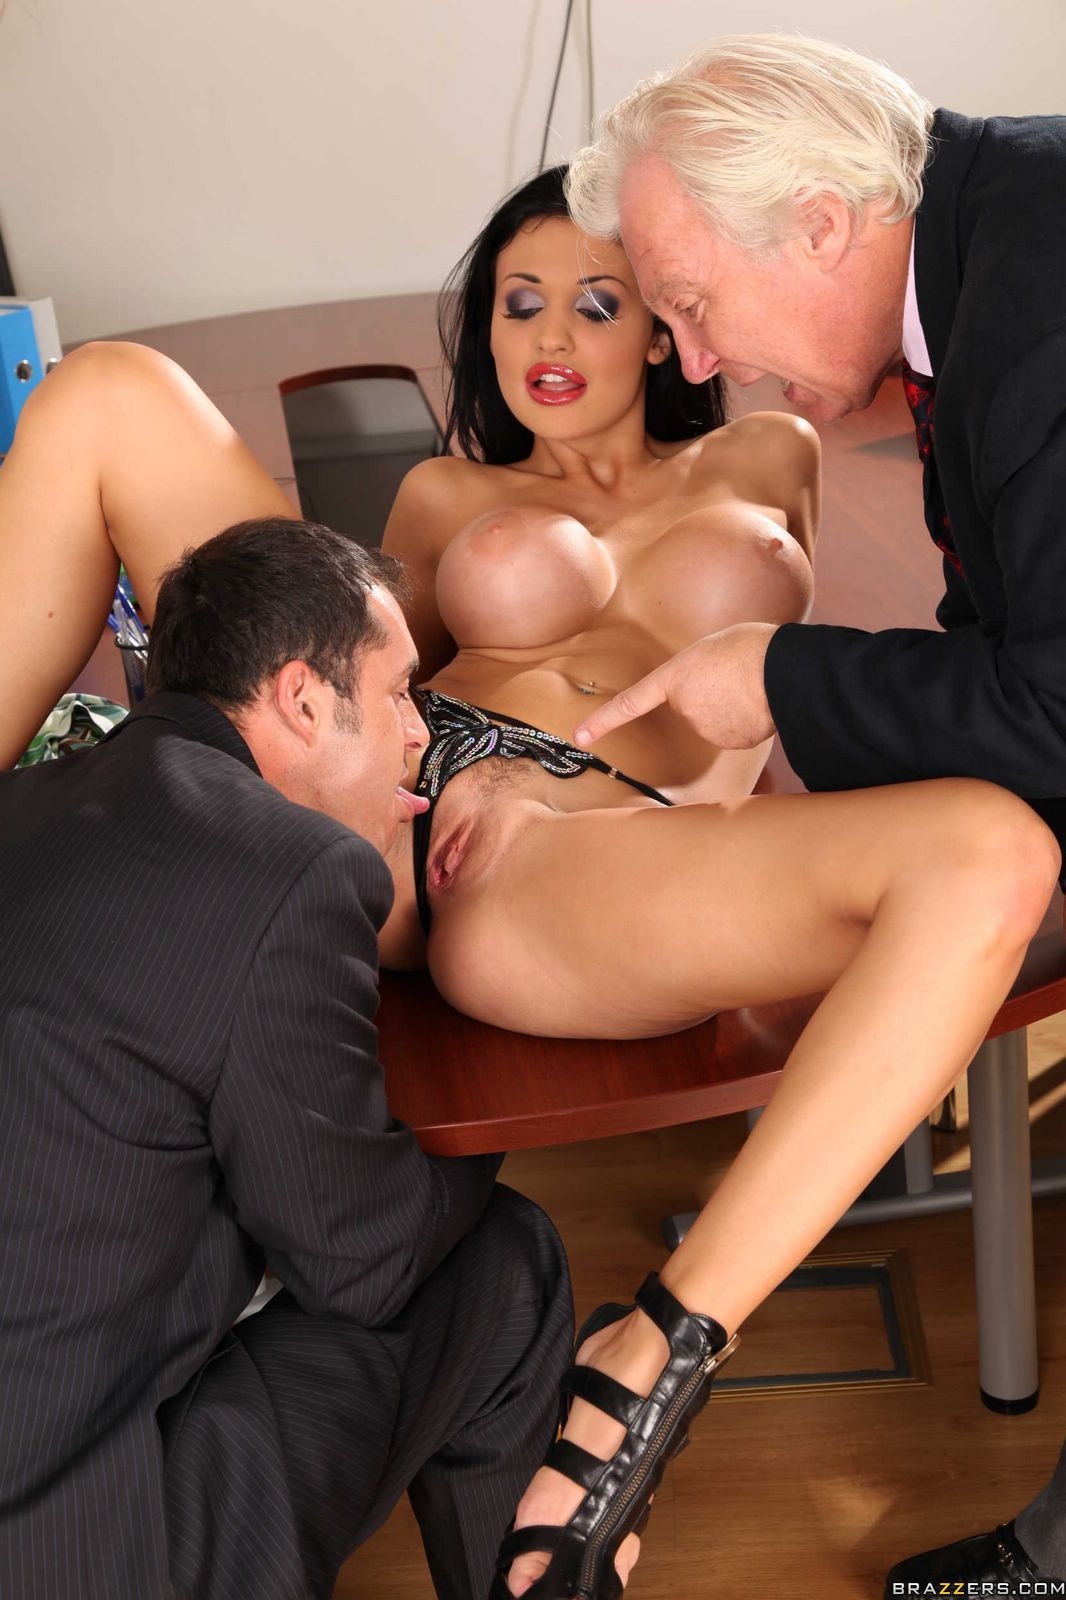 classy lady aletta ocean gets fucked by handsome guy in